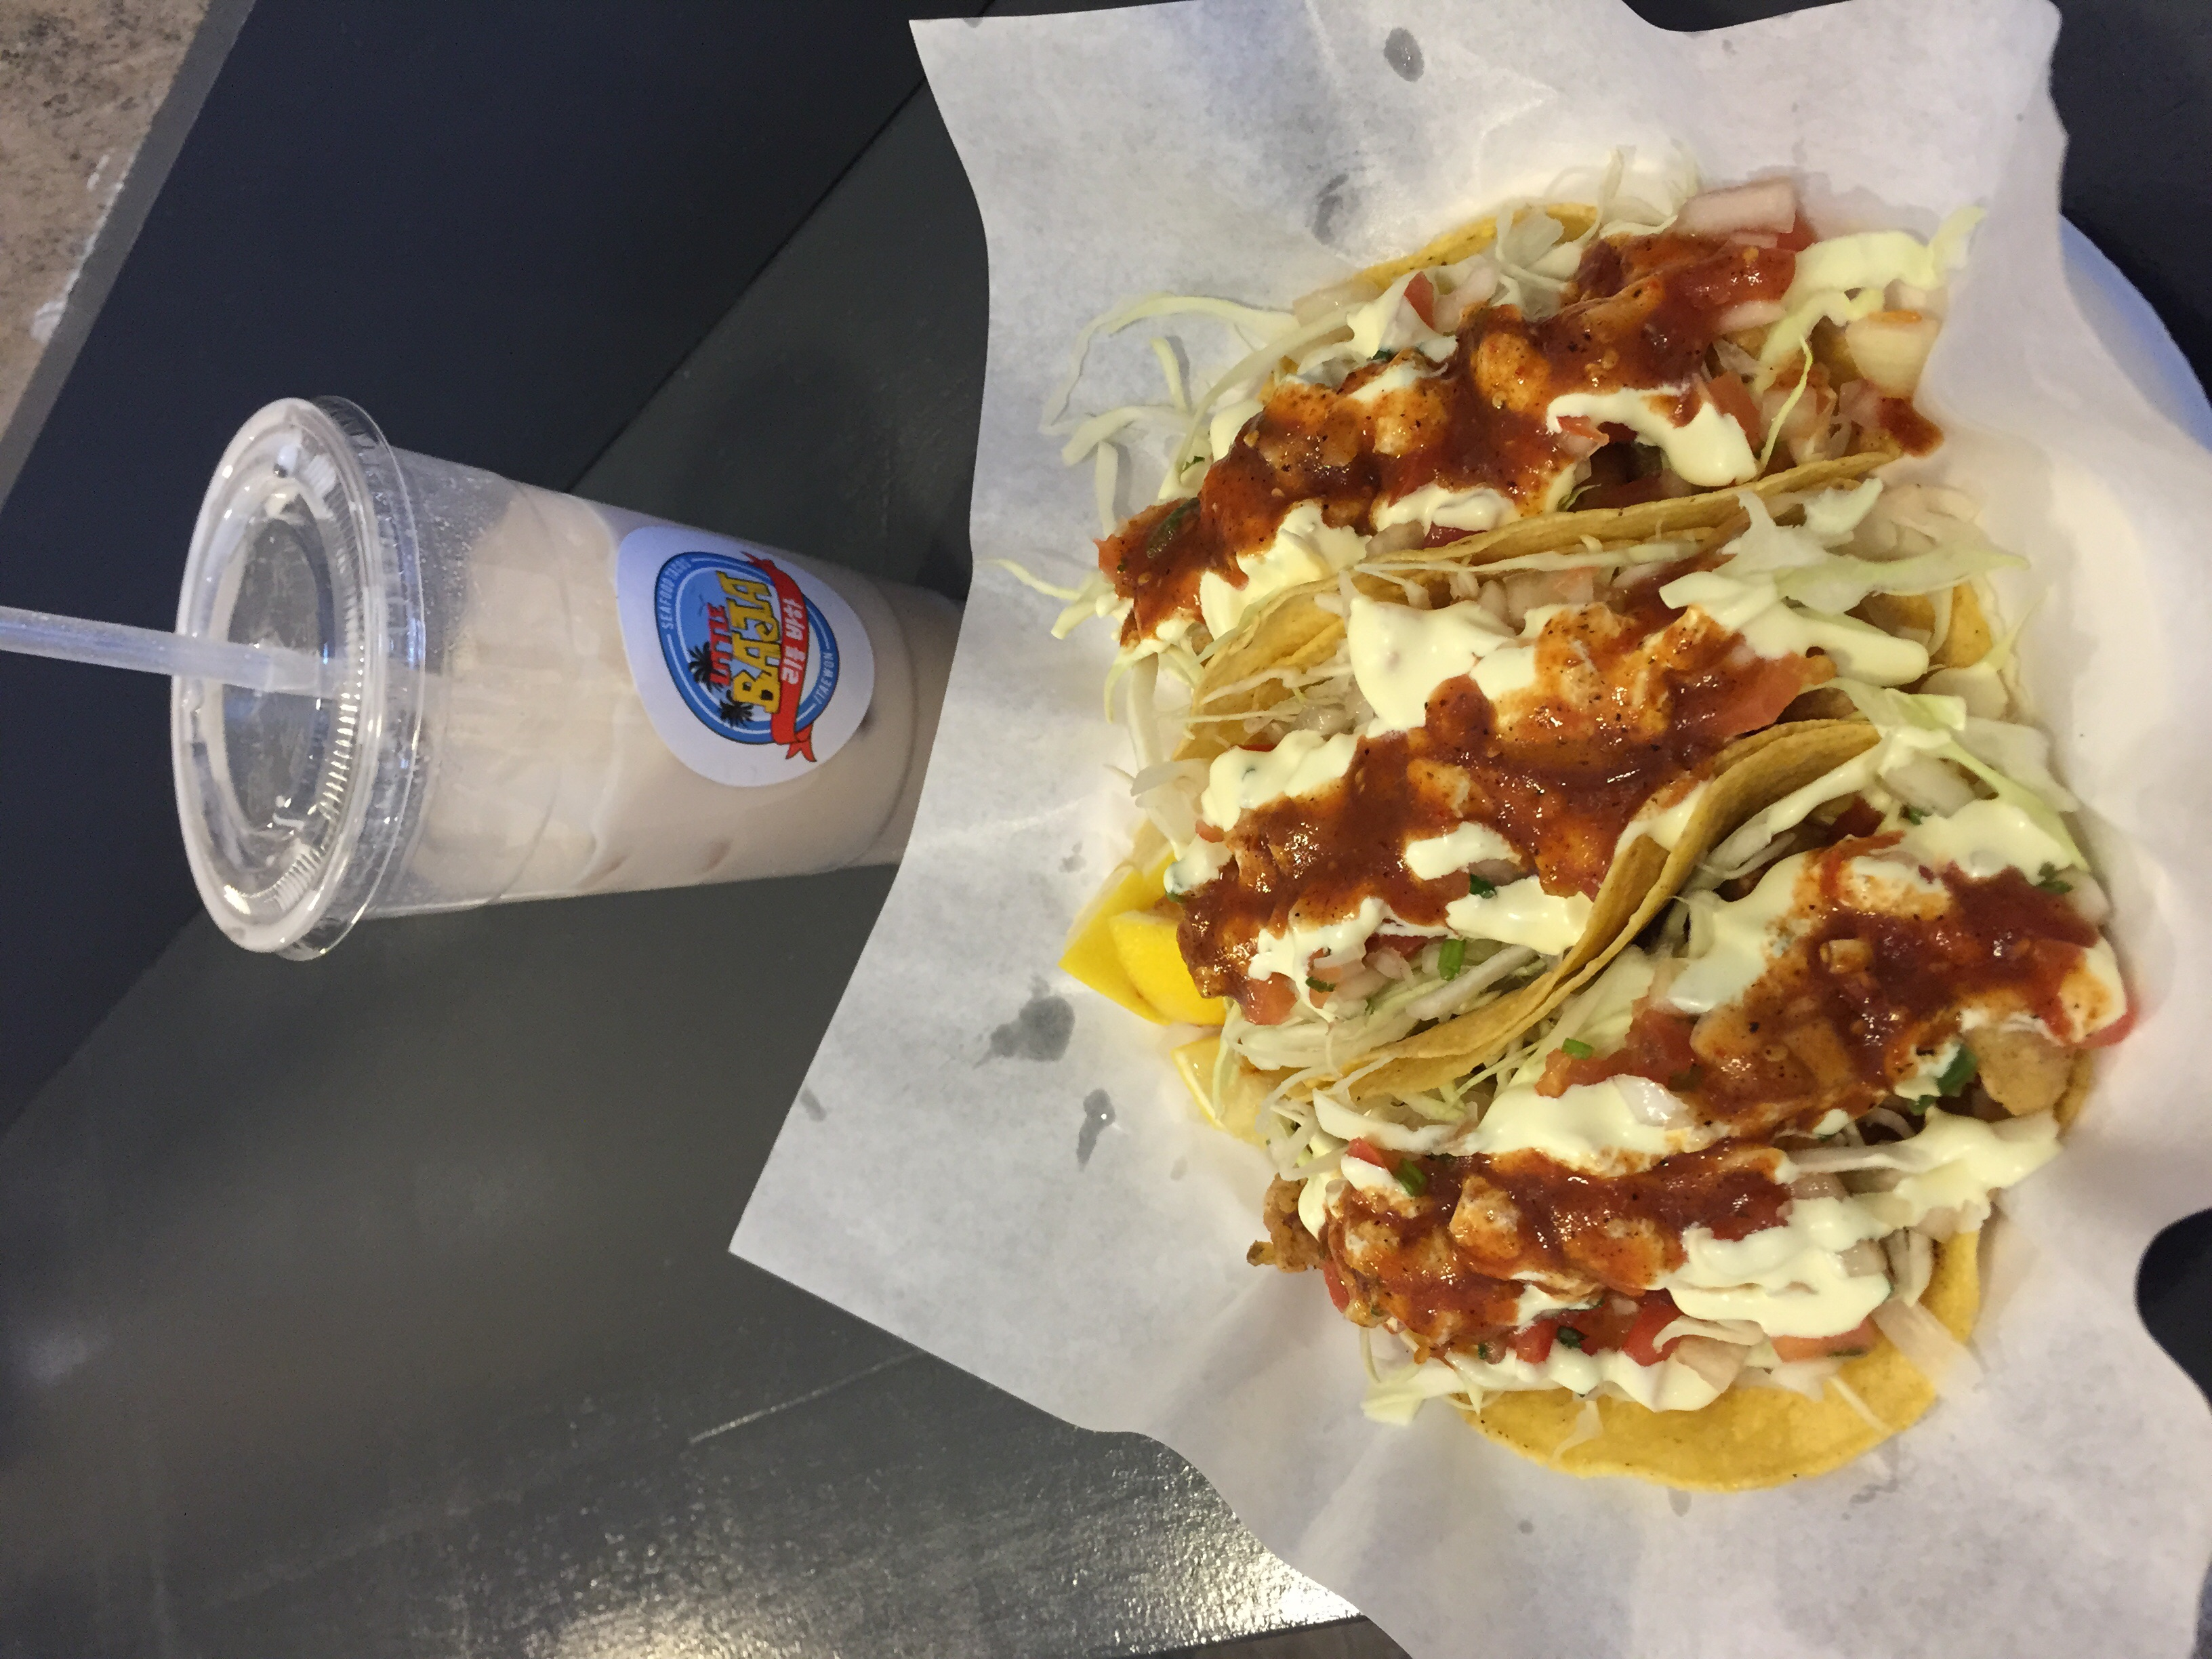 A taste test of all their seafood tacos on thinly pressed corn tortillas. All of their taco's are battered seafood, fried and topped with thinly cut cabbage, Baja style mayo and red salsa. I would order just the fish and octopus one next time again!